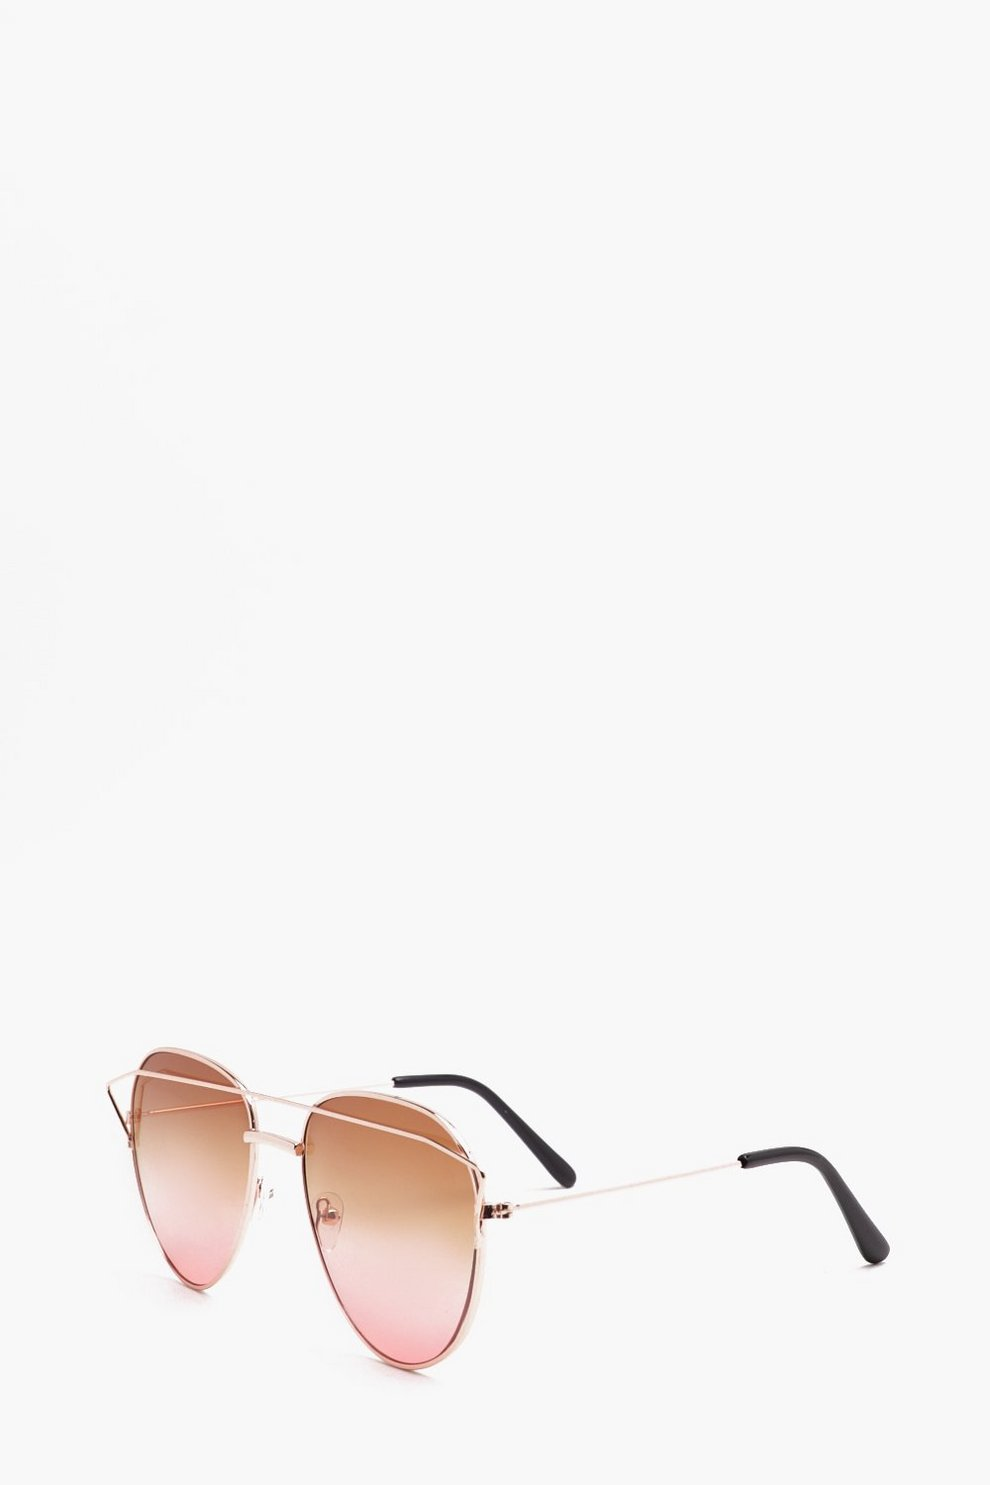 43aaf409716 Aviator Sunglasses With Pink Lens